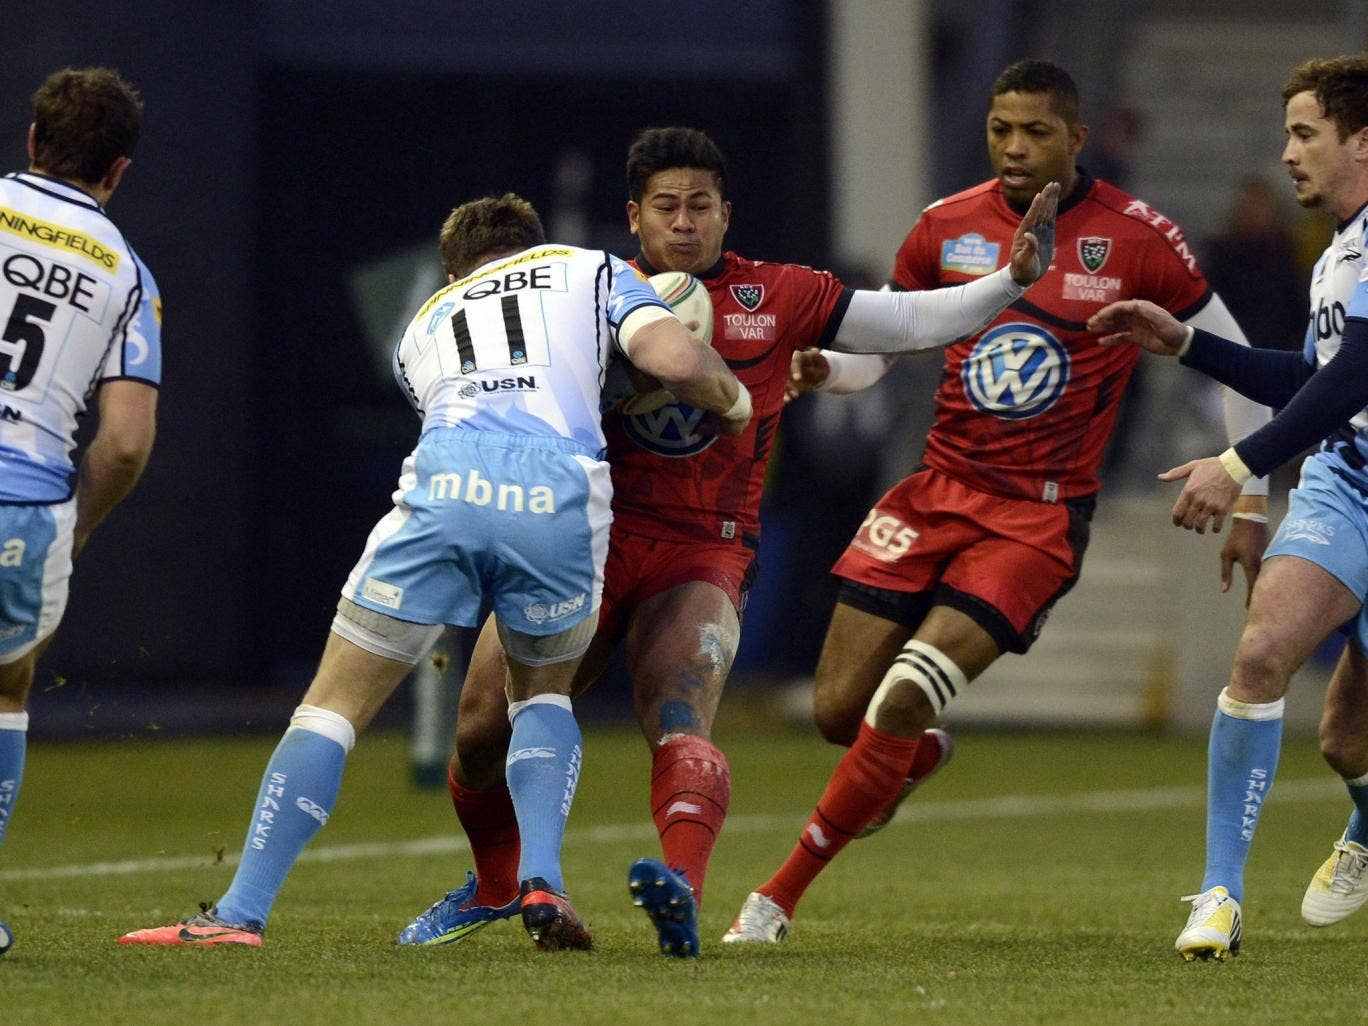 Shark attack: The Sale wing Mark Cueto tackles Toulon's David Smith at the Salford City Stadium